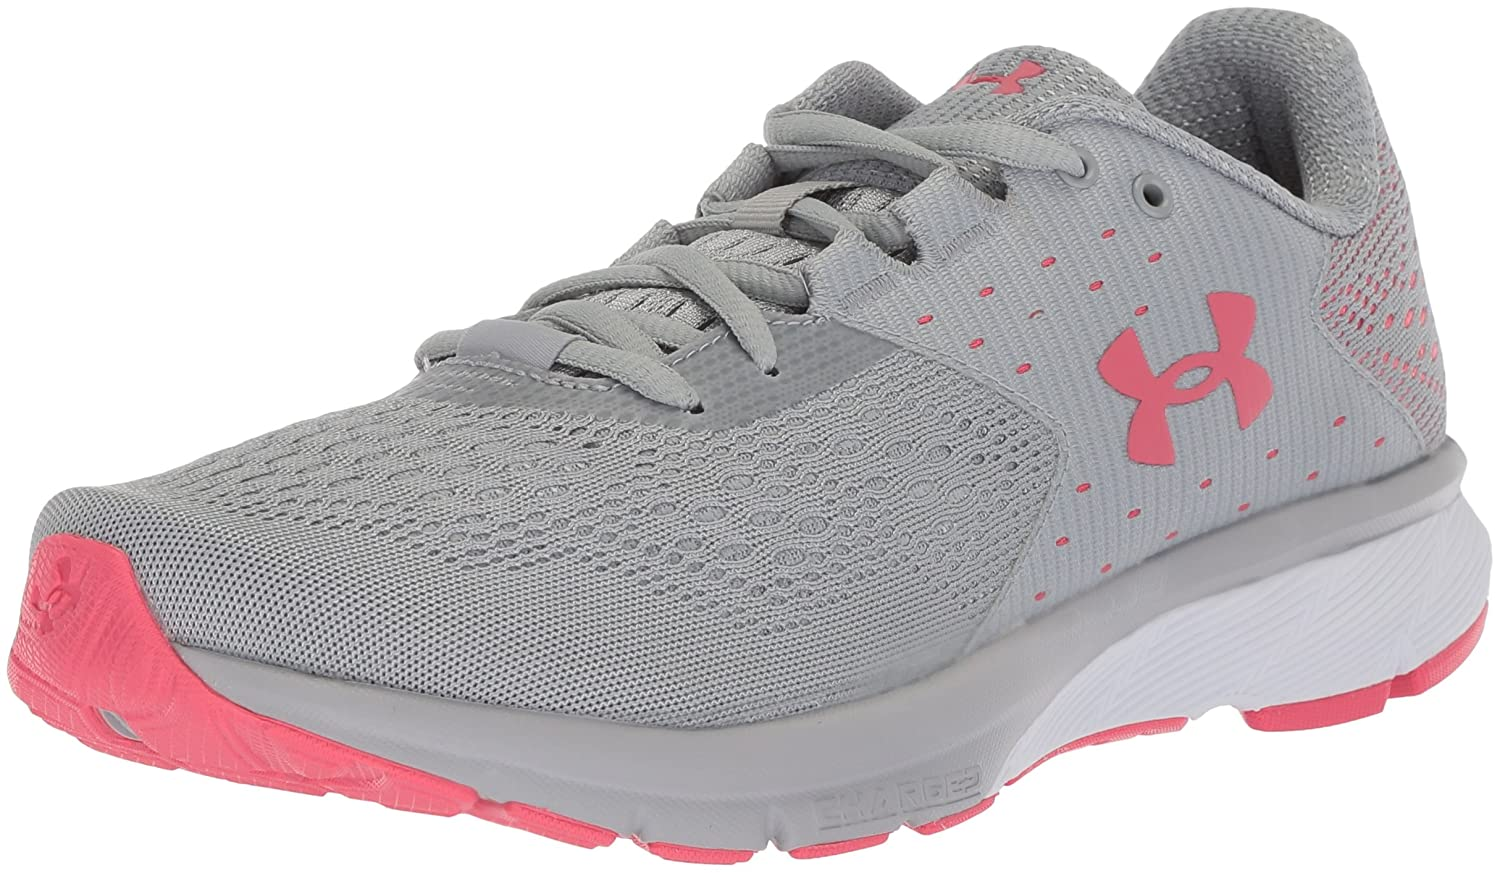 Under Armour Women's Charged Rebel Running Shoe B072FK4KY8 9.5 M US|Overcast Gray (102)/Success